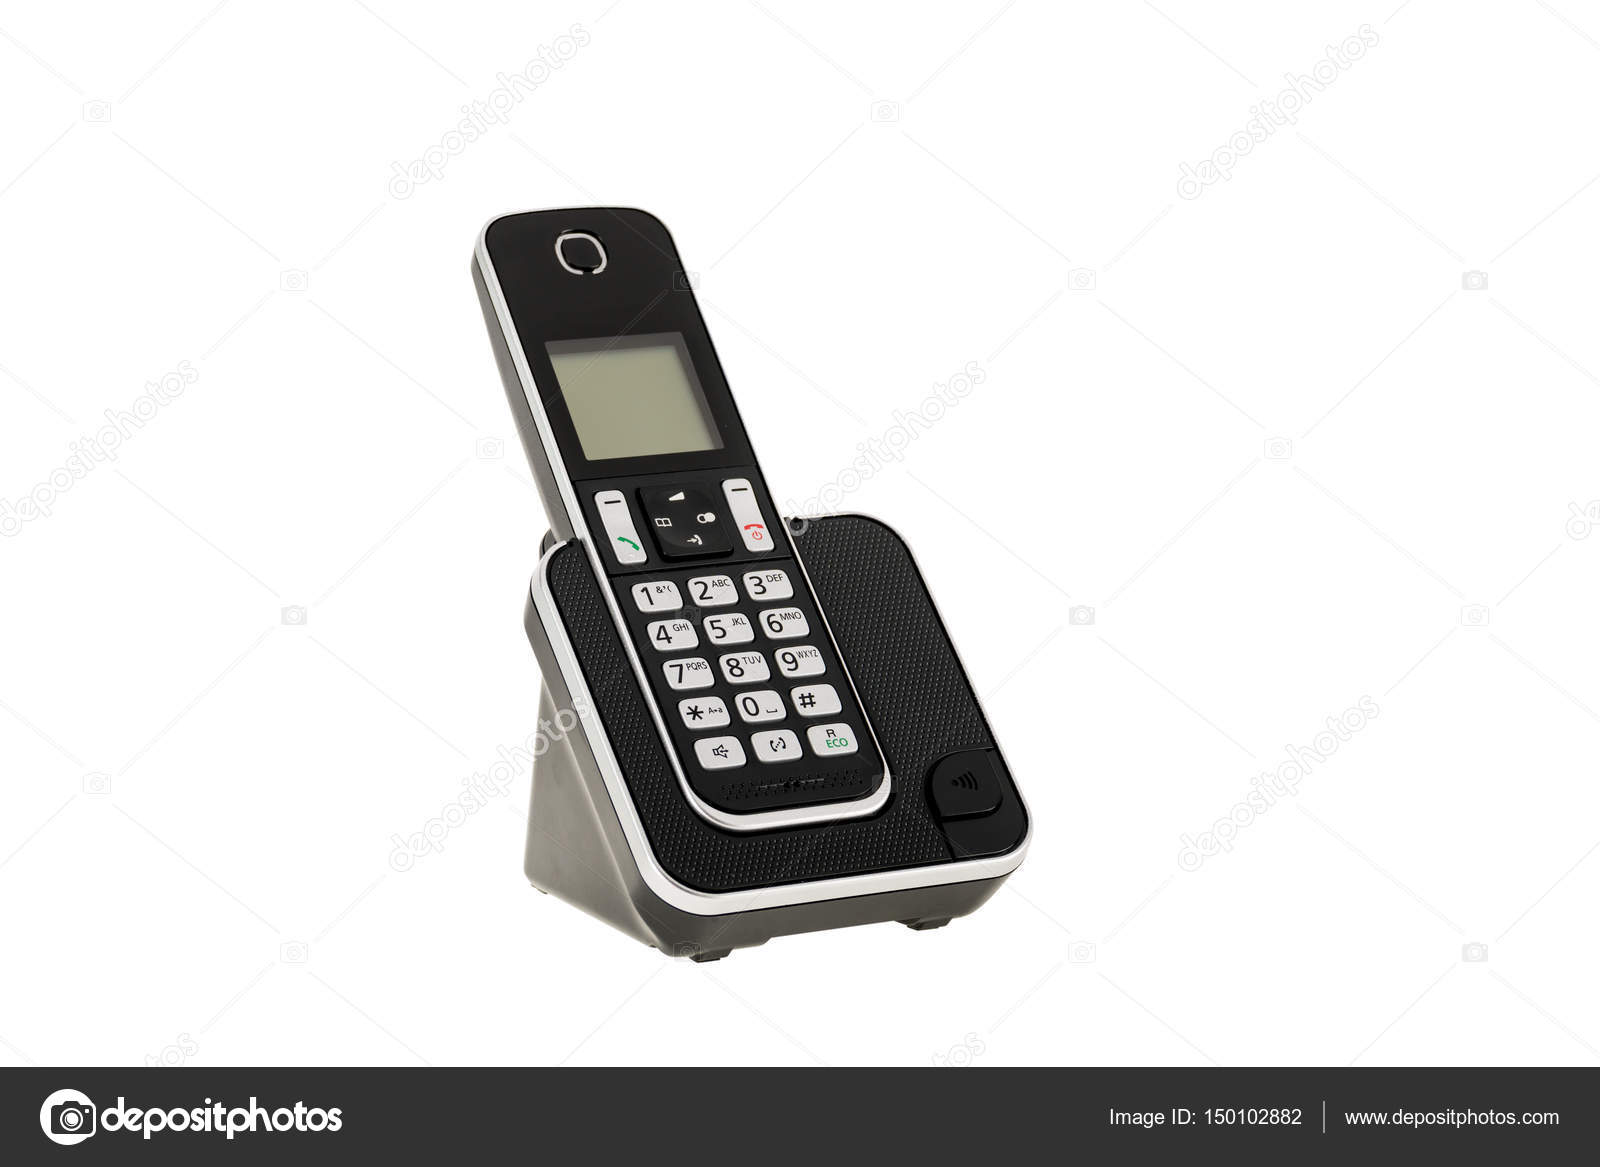 Modern Cordless Landline Dect Phone With Charging Station Isolated On White  With Clipping Path U2014 Stock